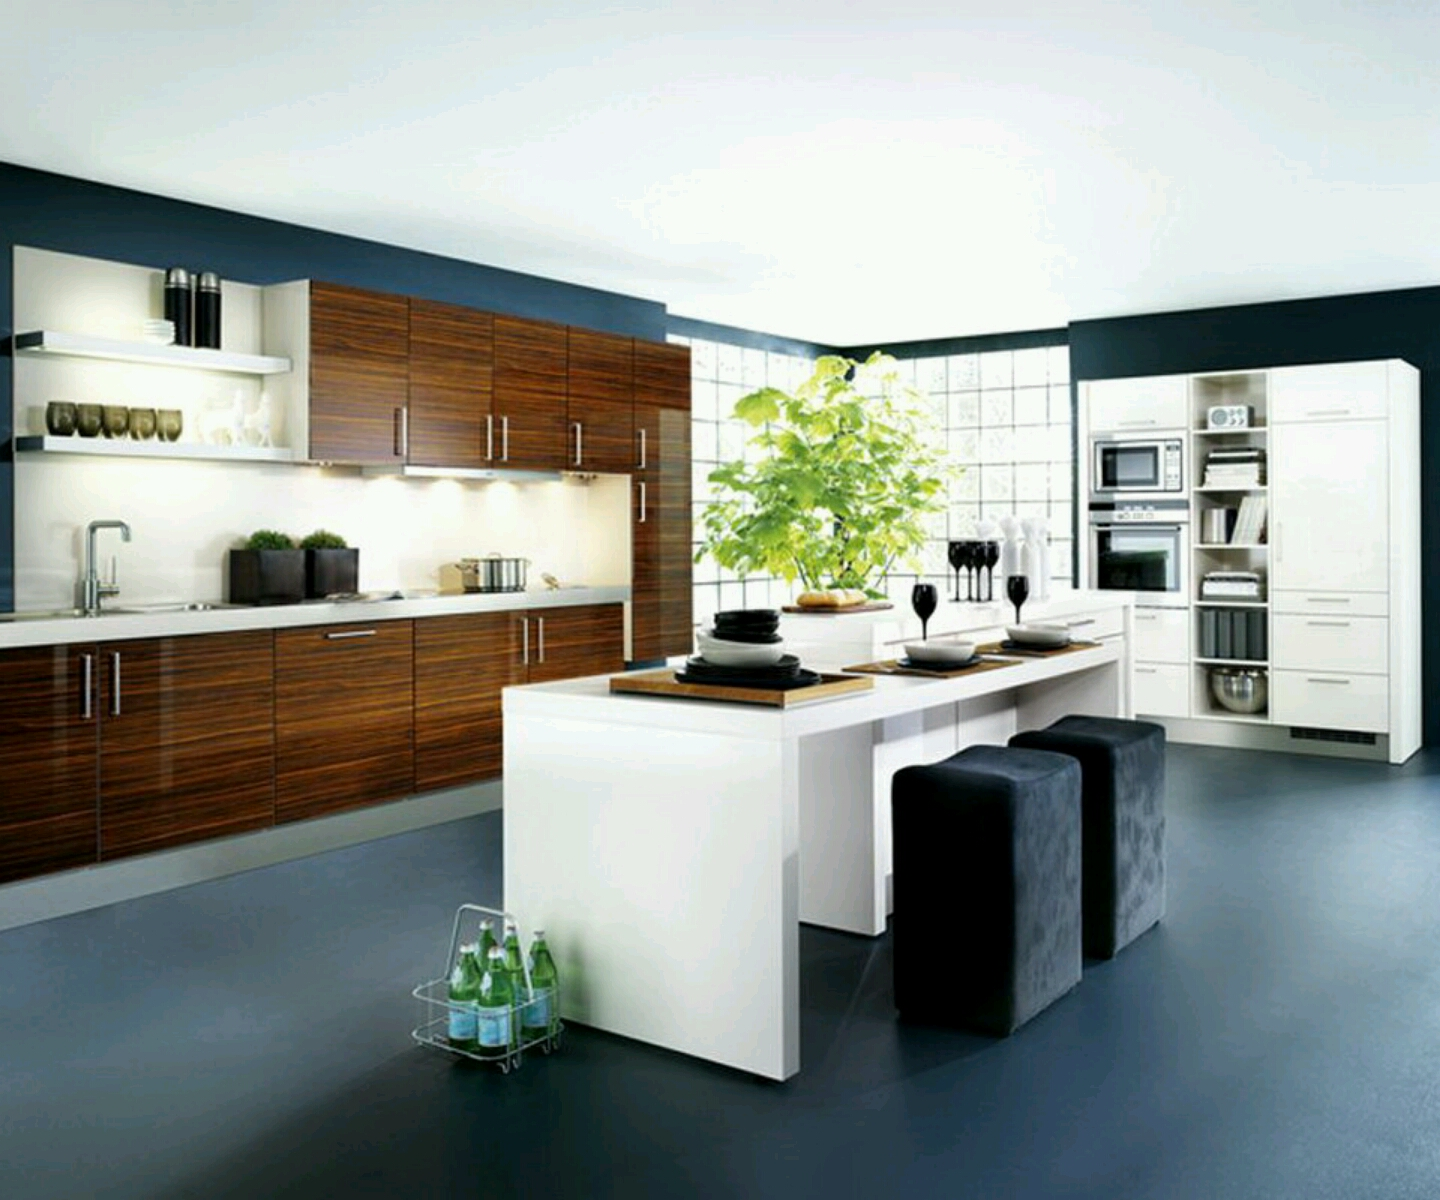 New home designs latest kitchen cabinets designs modern for New kitchen design ideas